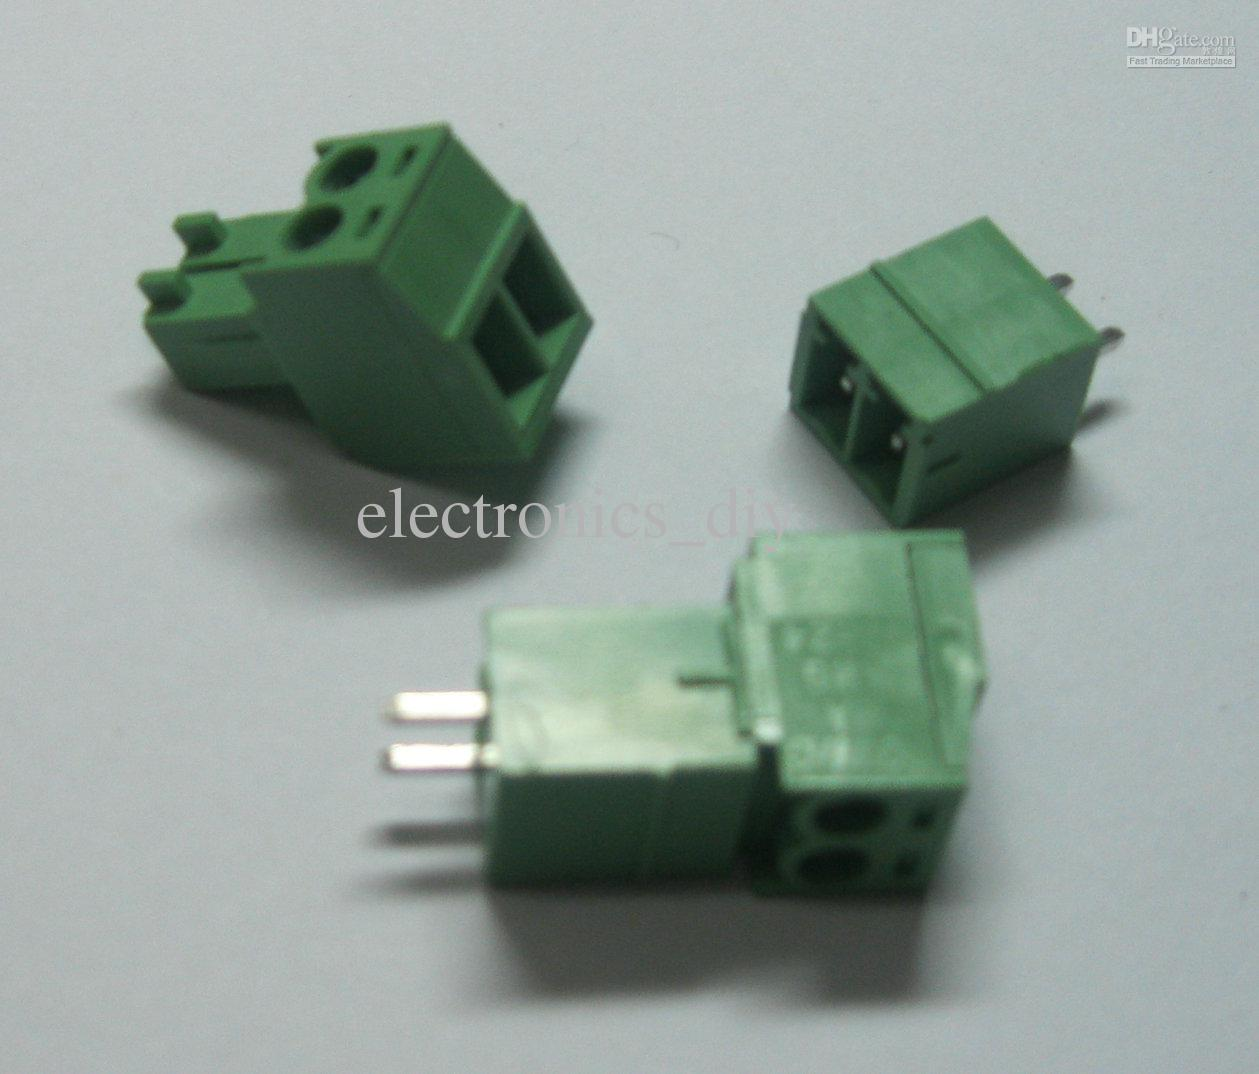 20 pcs 2pin/way Pitch 3 5mm Screw Terminal Block Connector Green Color T  Type with pin